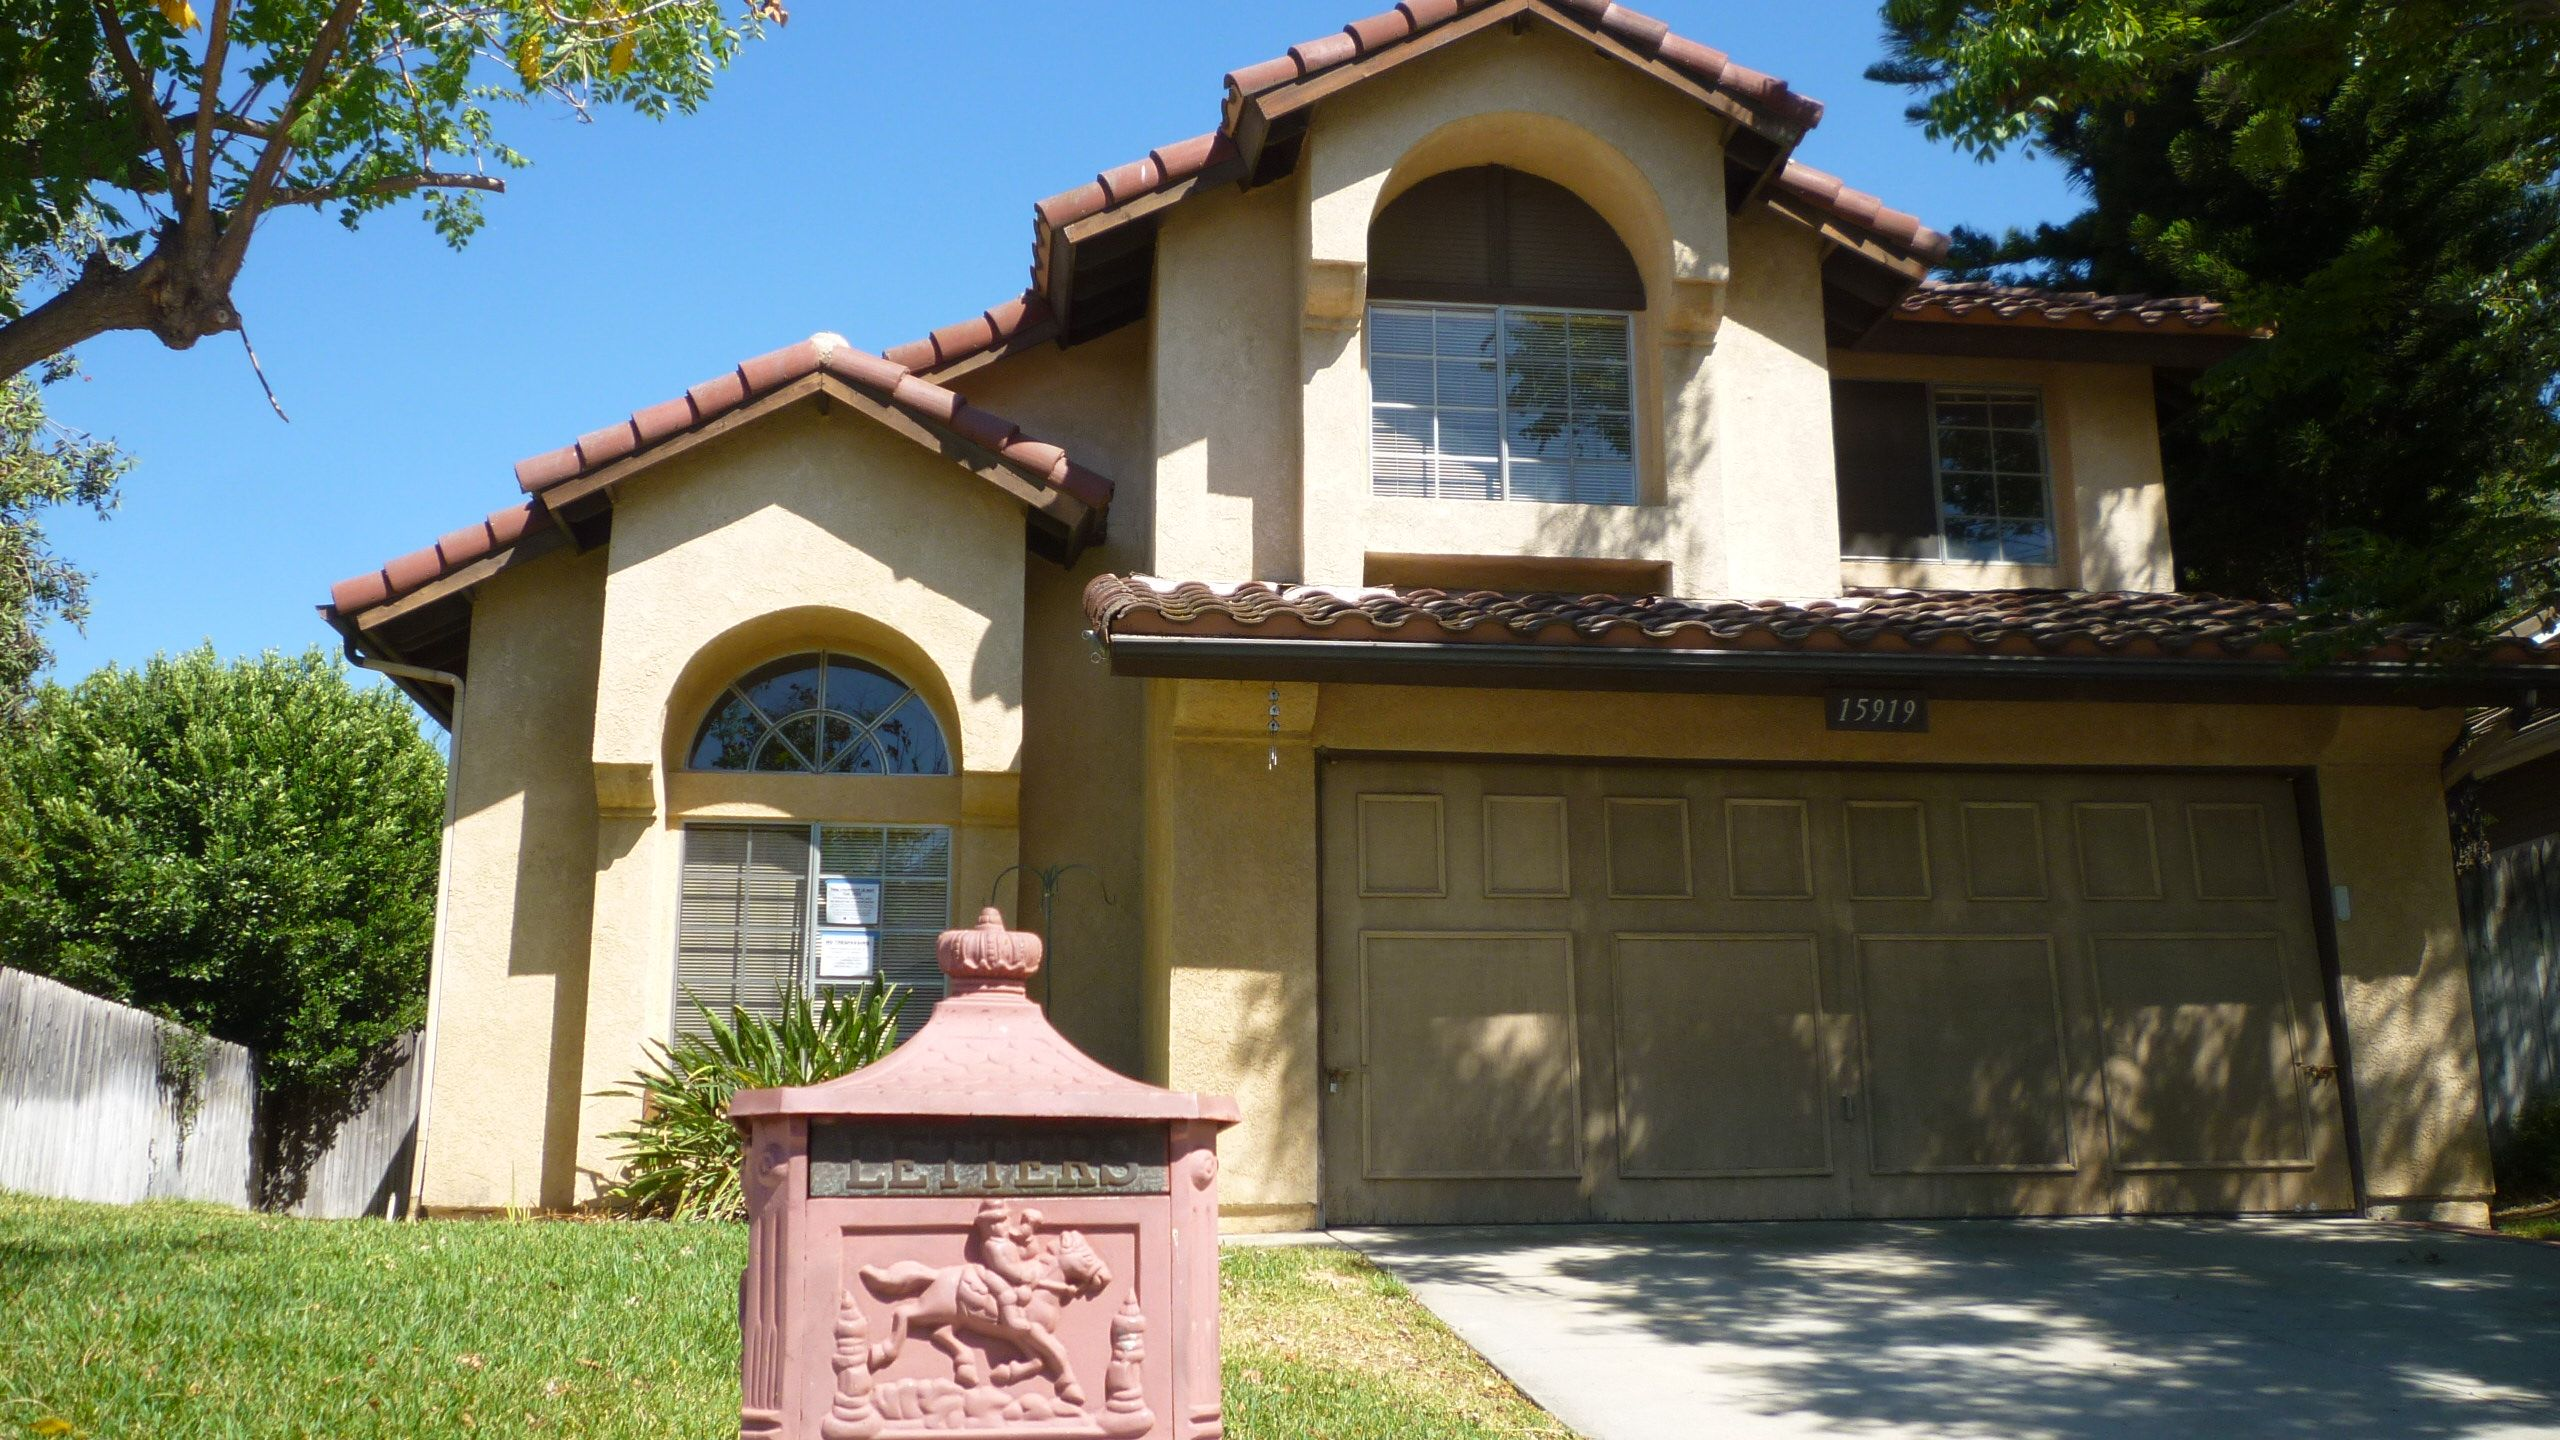 4 bedroom pool house for sale in chino hills with images